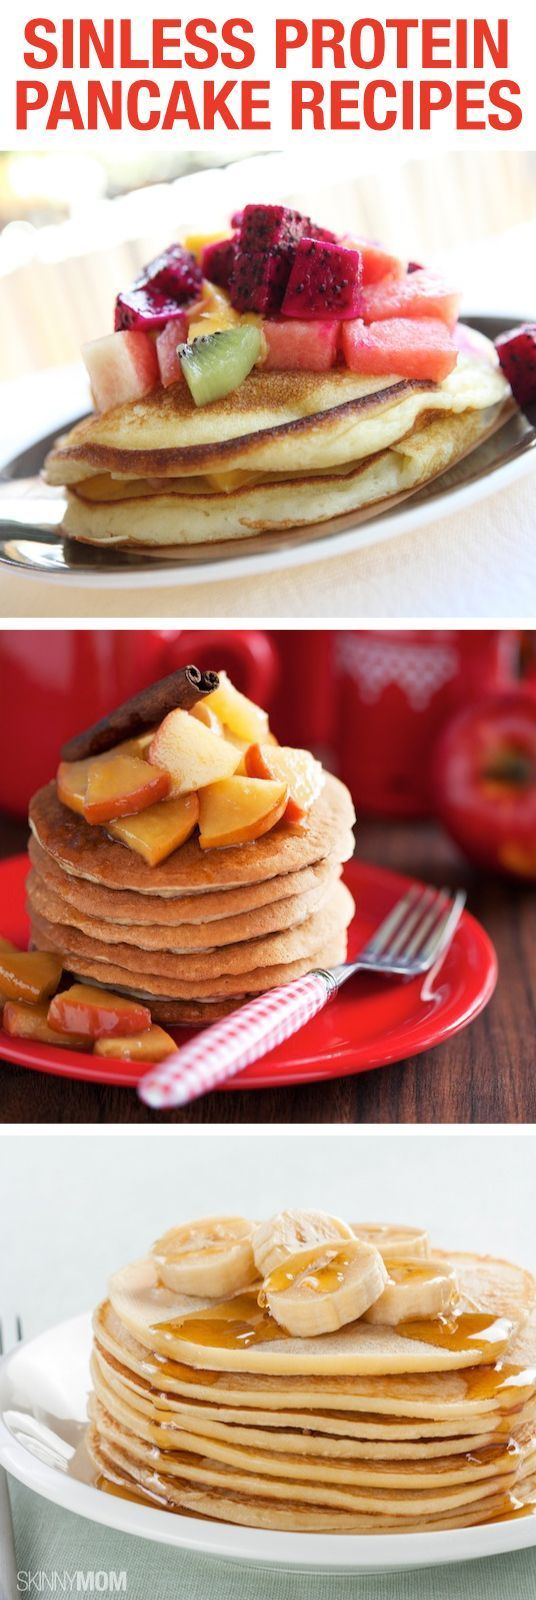 Great pancake recipes for tomorrow's breakfast.